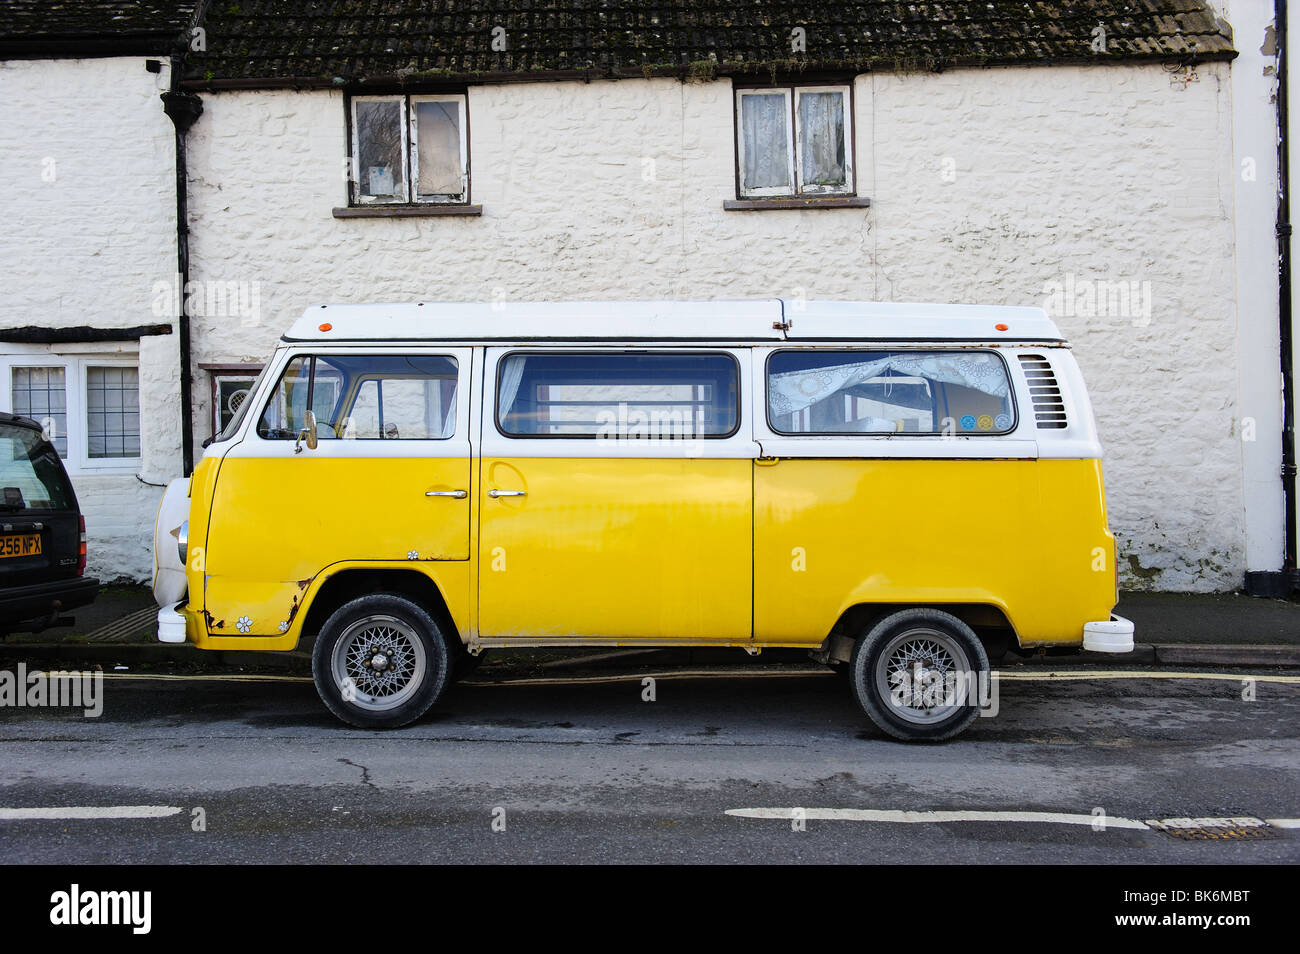 Volkswagen Camper Van Yellow Hippy Hippies Camping Vw Festivals Stock Photo Alamy